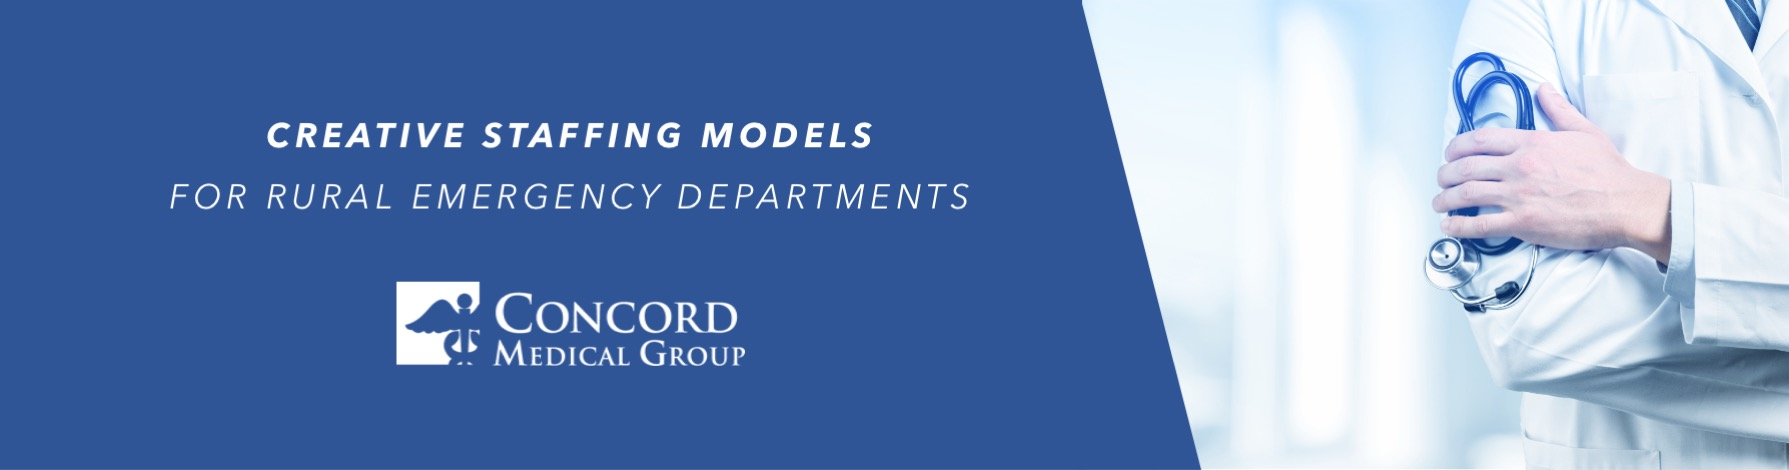 Creative Staffing Models for Rural Emergency Departments